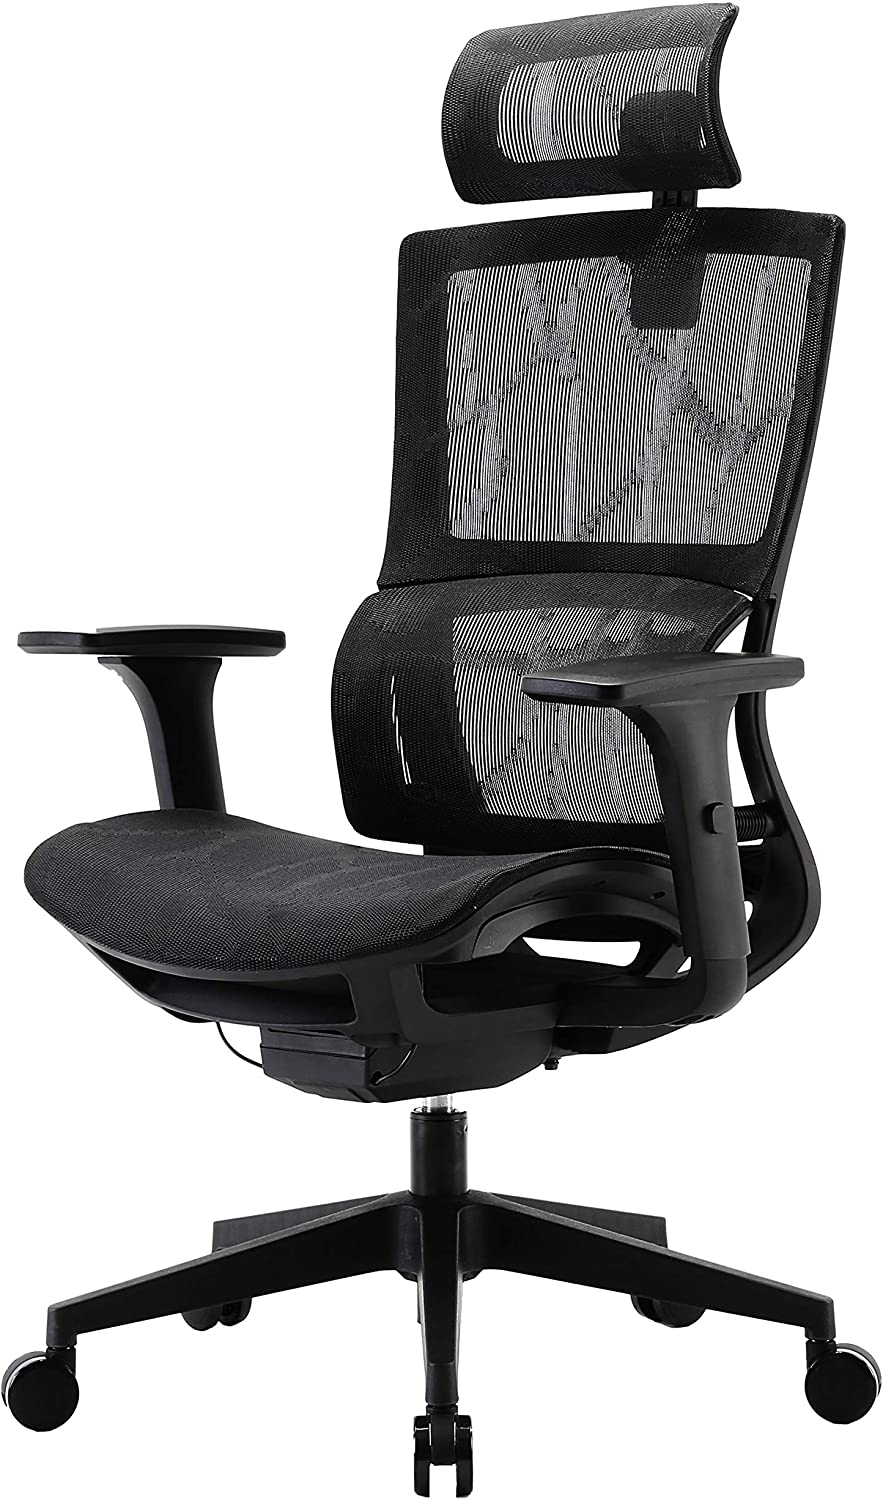 Amazon Com Xuer Ergonomic Office Chair With Cozy Lumbar Support And Adjustable 3d Armrest Computer Desk Chair With Mesh Seat And High Back Multifunction For Relaxation Black Kitchen Dining